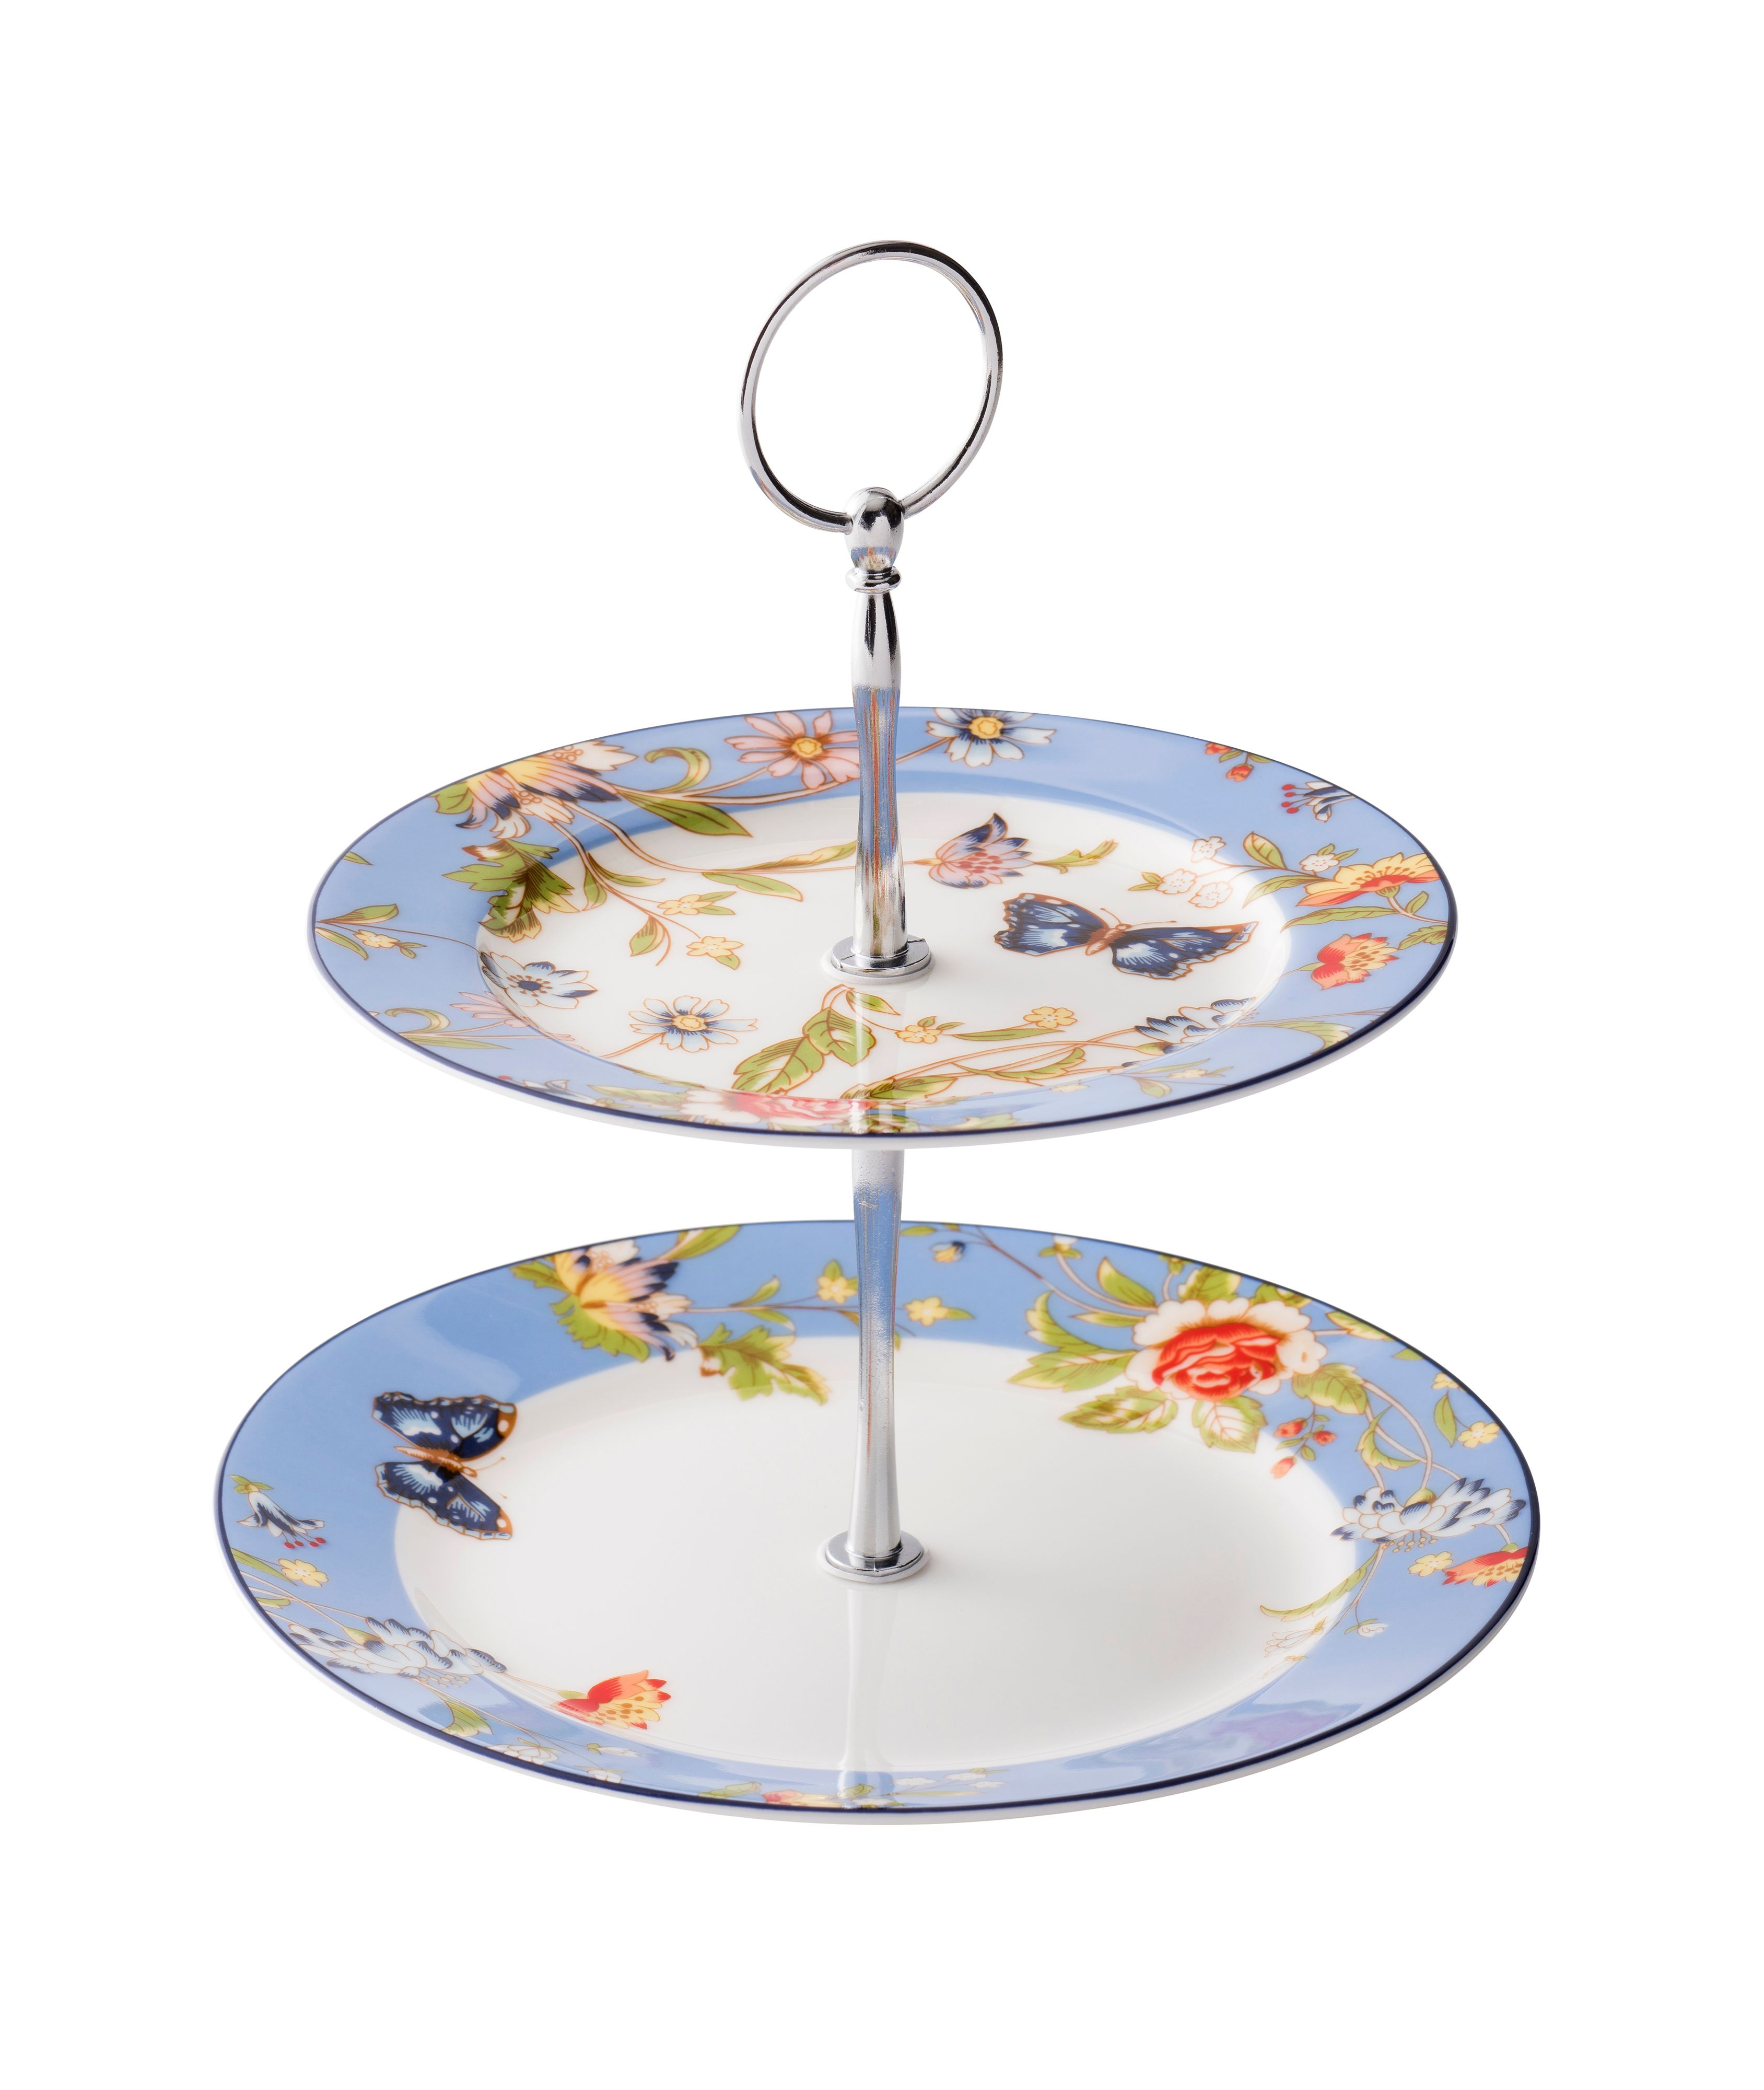 Aynsley Cottage Garden Two Tiered Cake Stand ...  sc 1 st  House of Fraser & Aynsley Dinnerware at House of Fraser